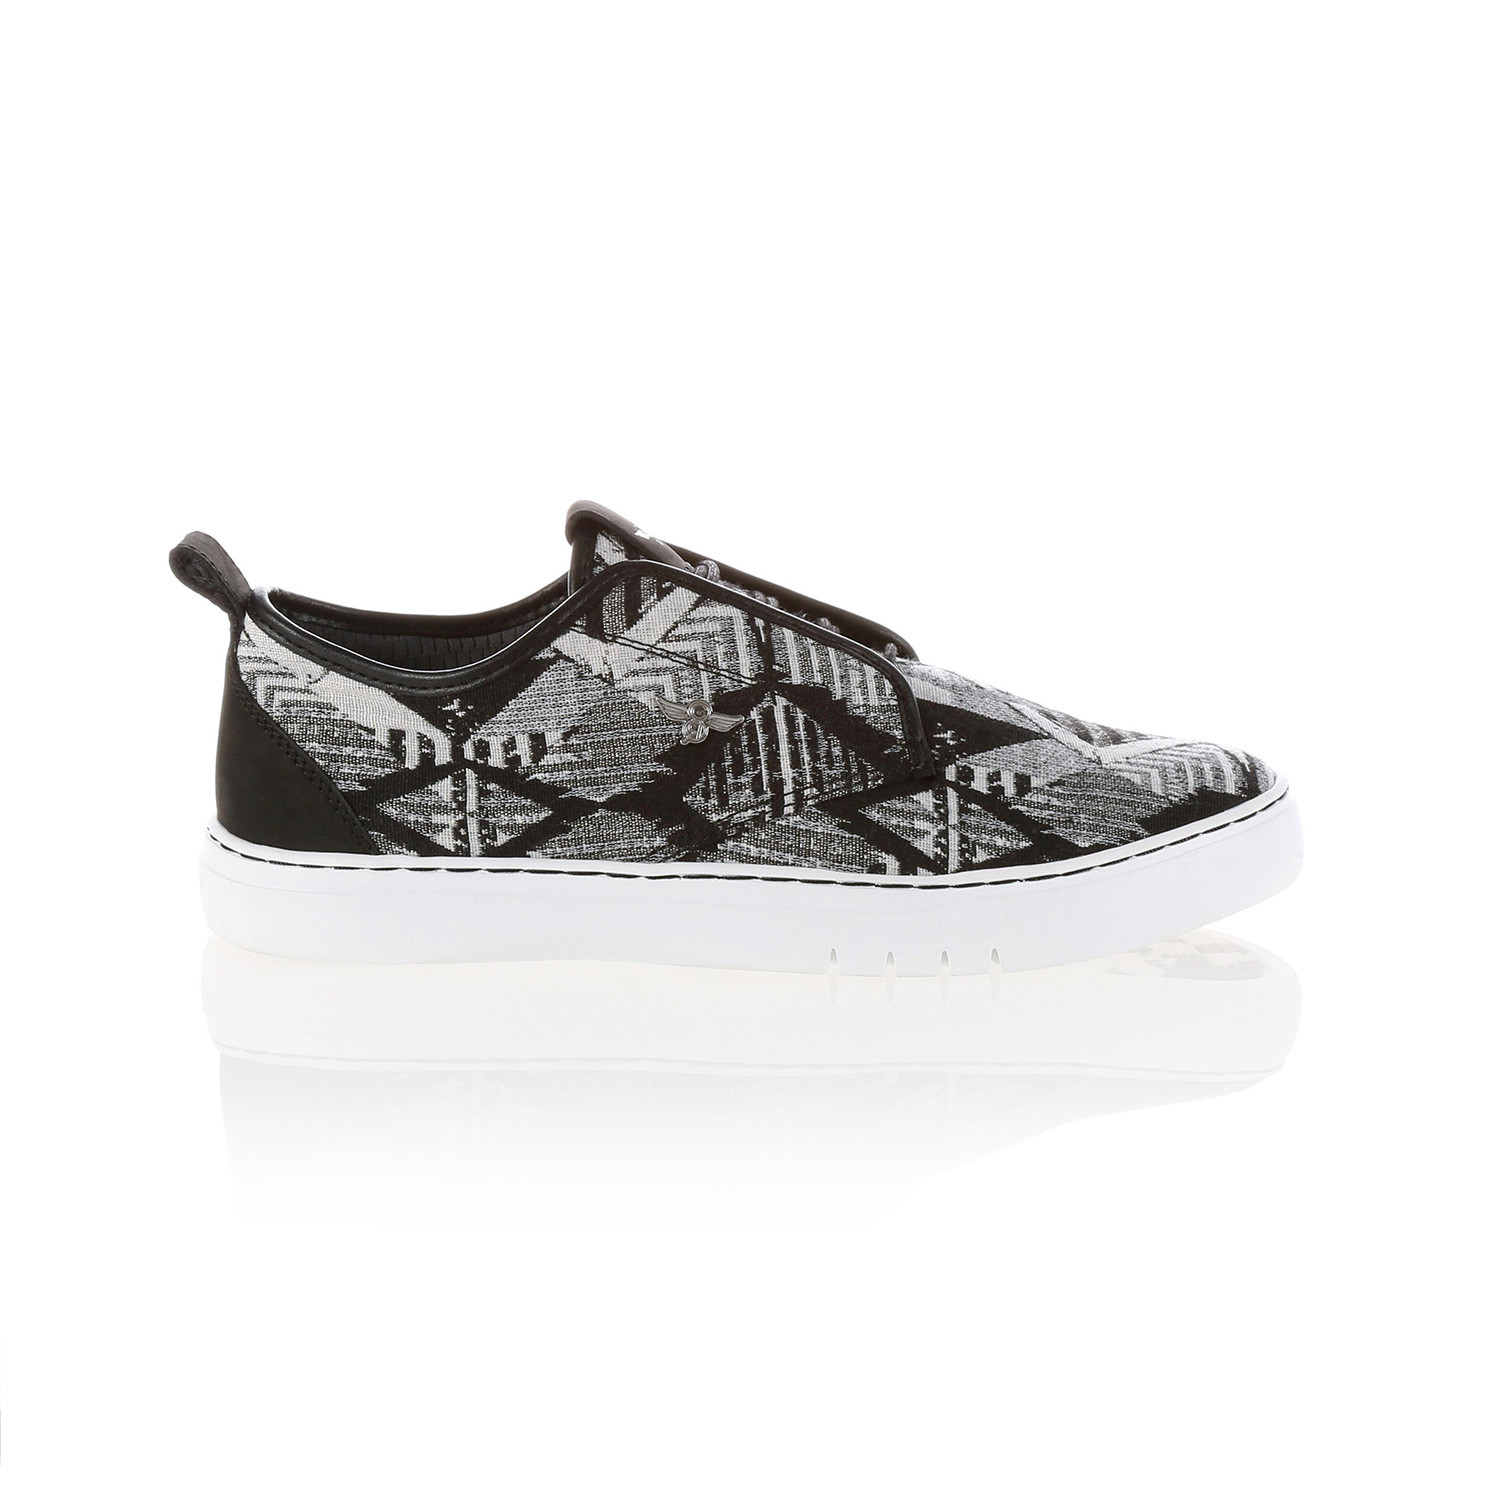 lacava q tribal low top sneaker black white us 7 creative